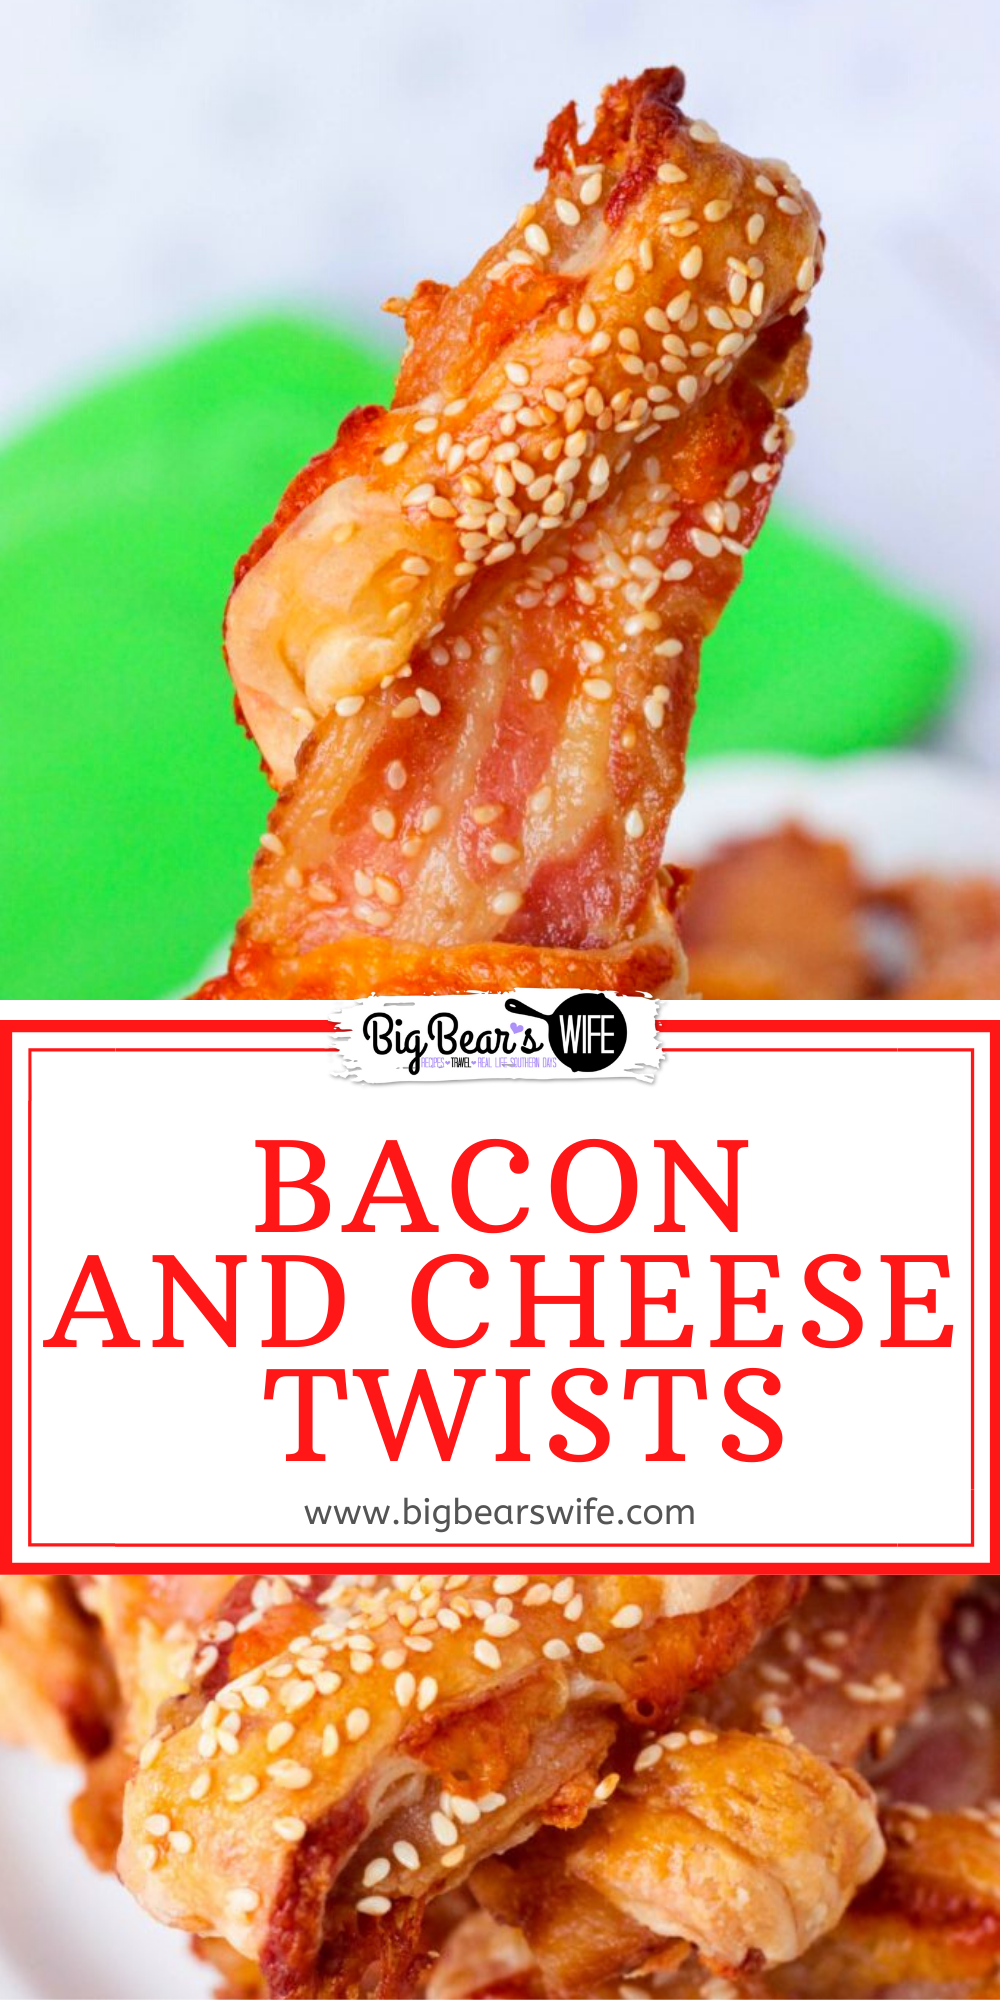 A few simple ingredients plus a bit of oven time and you've got fantastic Bacon and Cheese Twists that are perfect for Breakfast or Brunch! Serve them along side scrambled eggs or cooked sausage with ketchup or BBQ sauce for dipping! via @bigbearswife